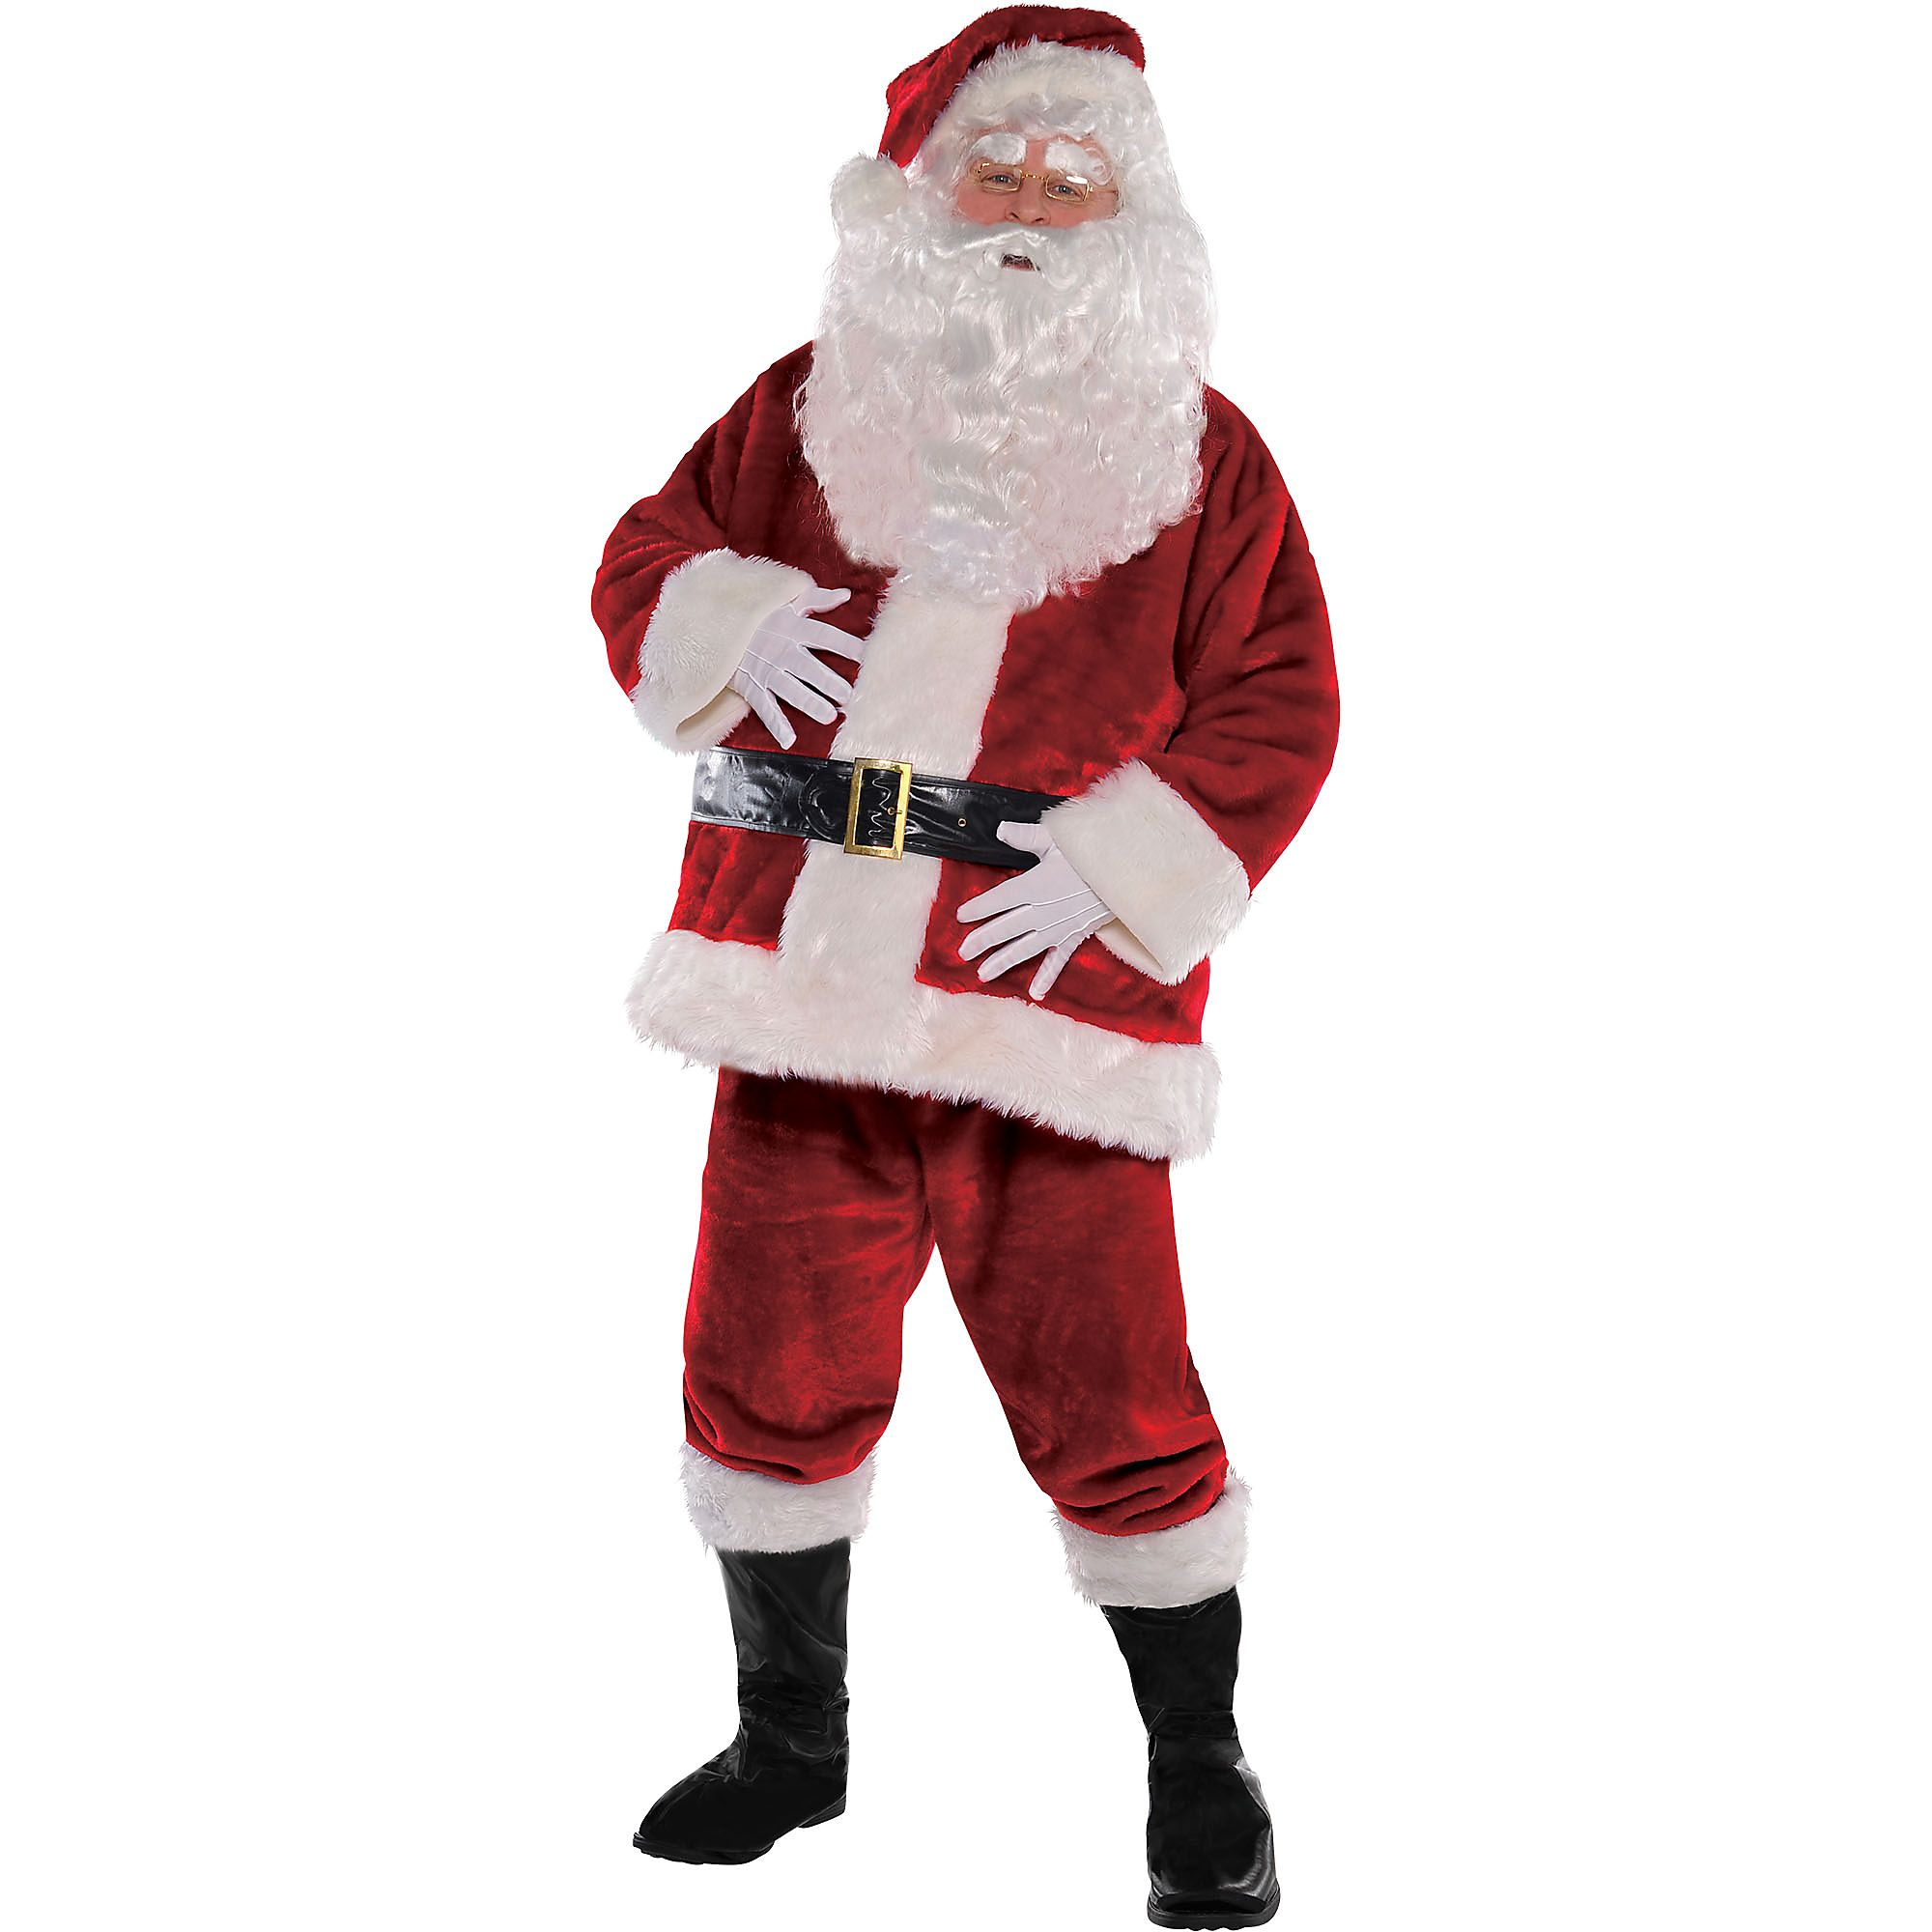 cca94f7f Royal Santa Suit for Adults, Christmas Costume, Extra Large, with  Accessories